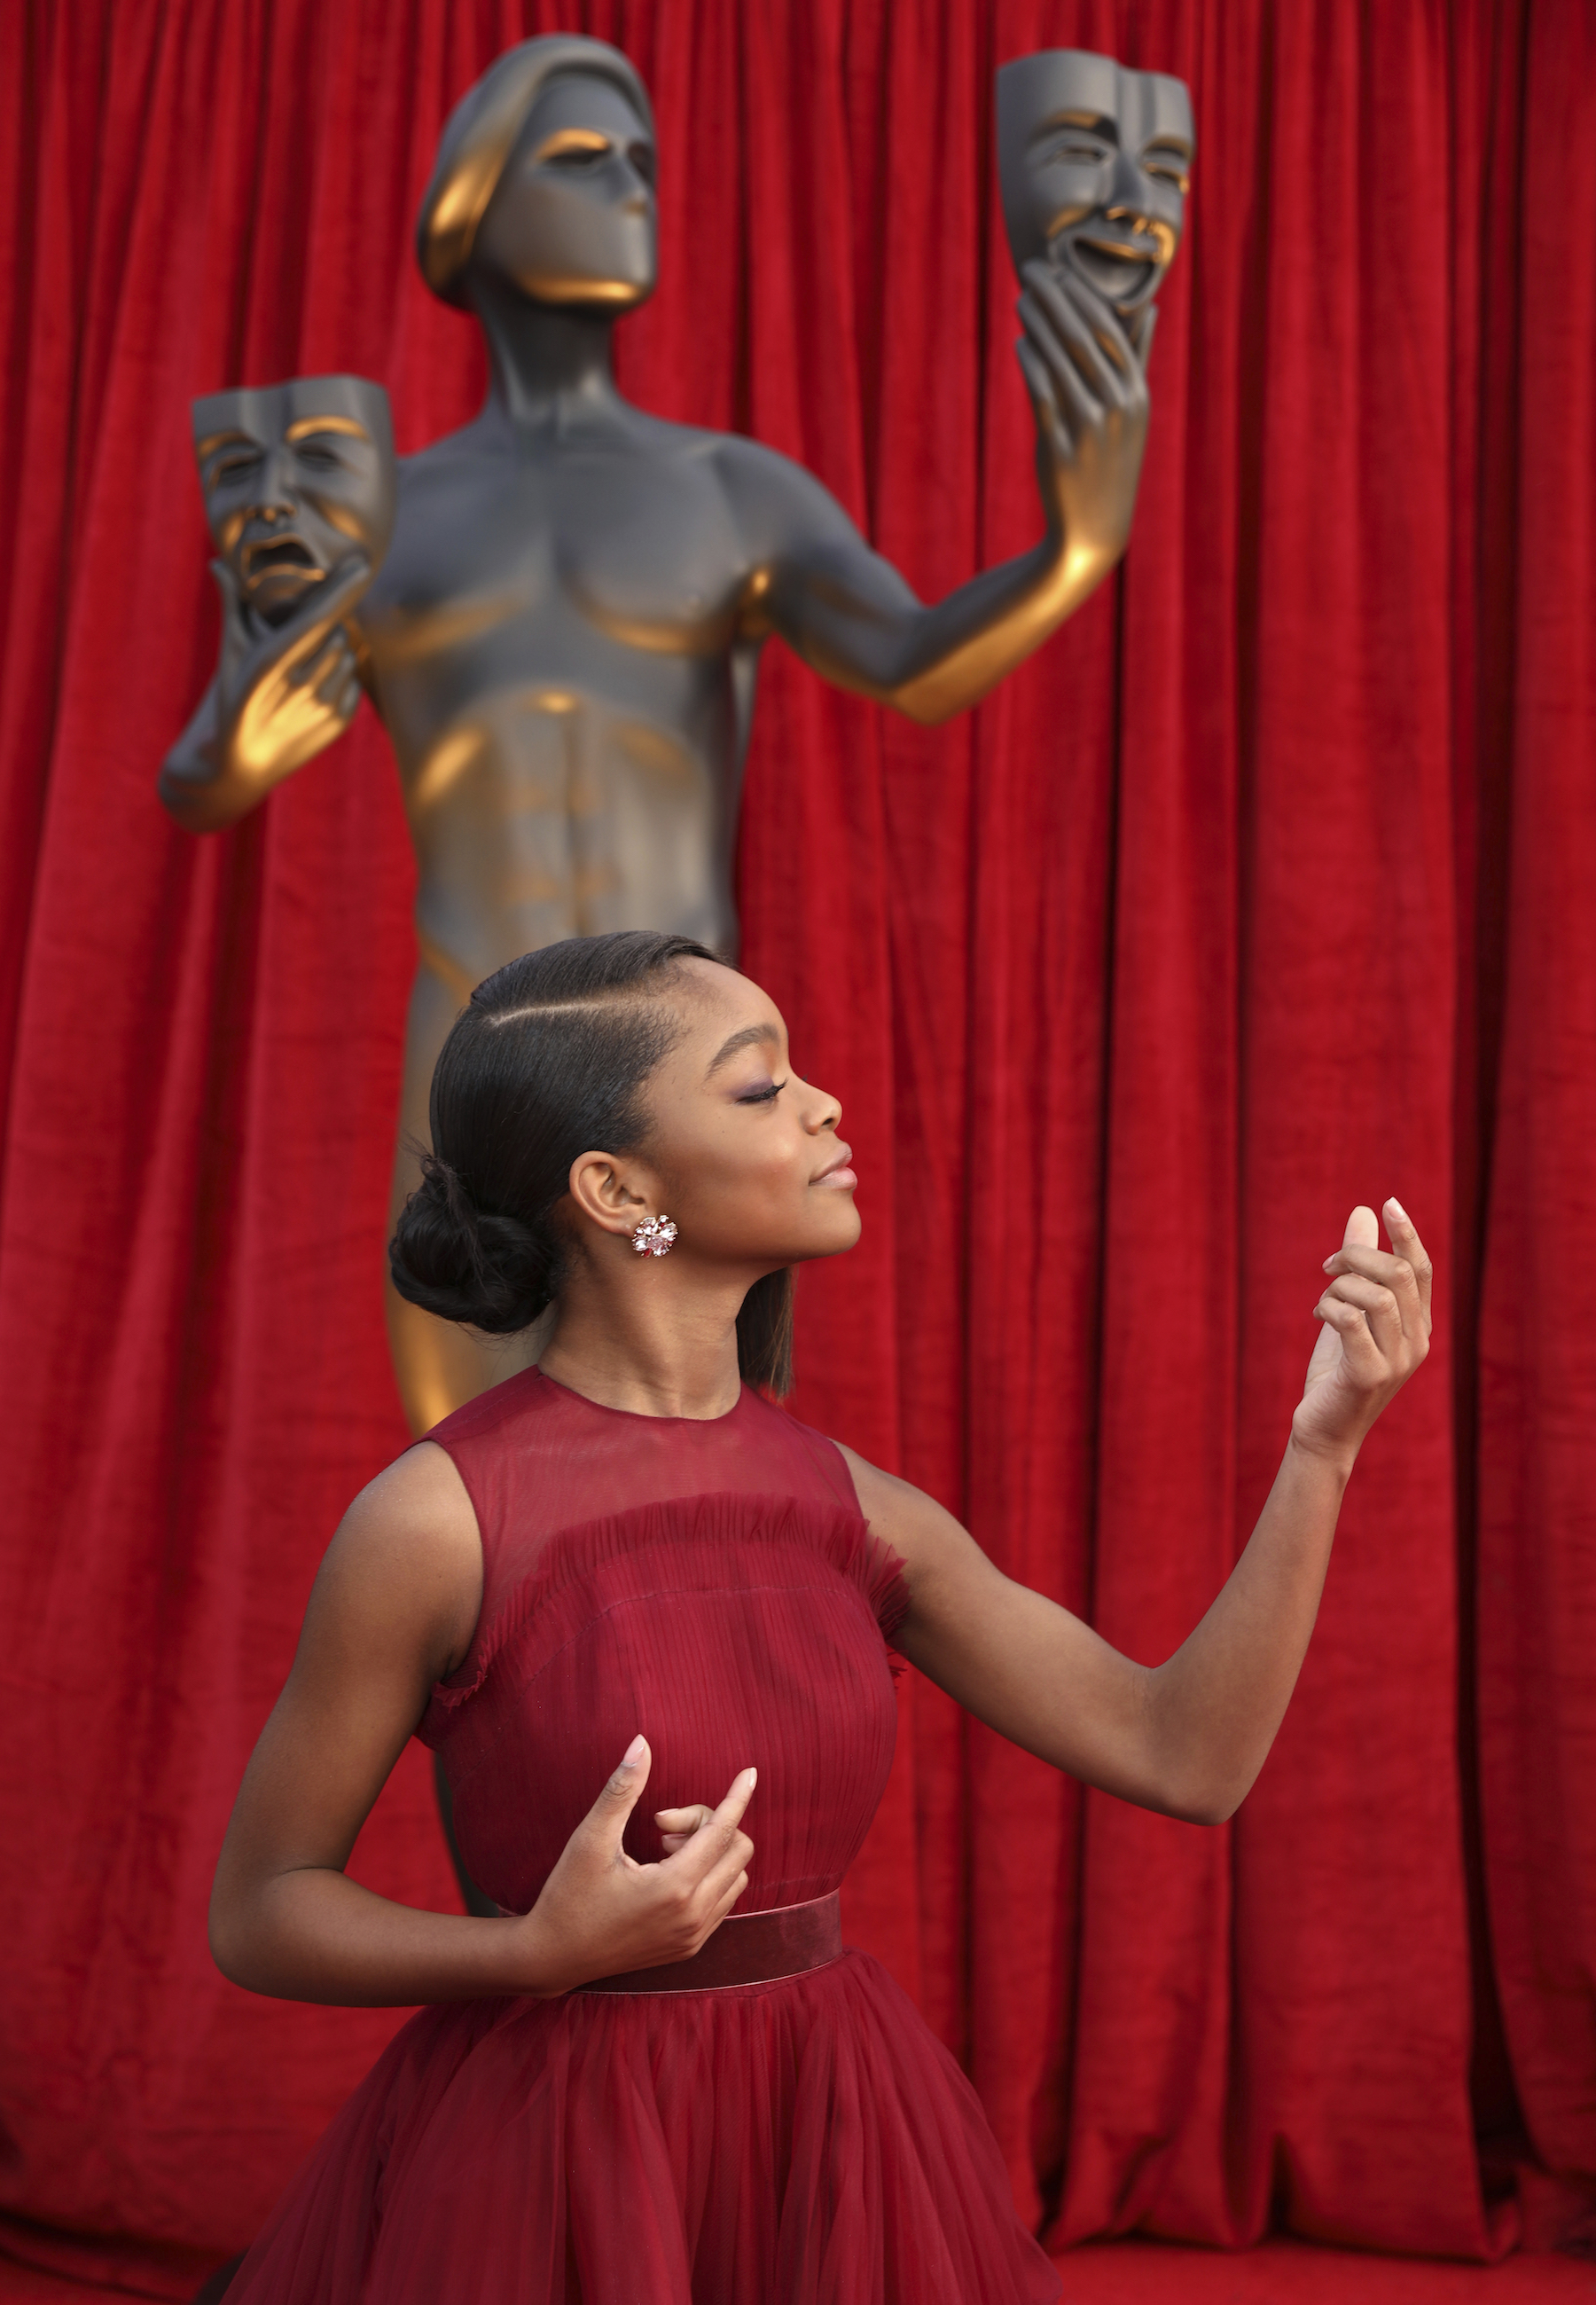 <div class='meta'><div class='origin-logo' data-origin='AP'></div><span class='caption-text' data-credit='Matt Sayles/Invision/AP'>Marsai Martin arrives at the 24th annual Screen Actors Guild Awards at the Shrine Auditorium & Expo Hall on Sunday, Jan. 21, 2018, in Los Angeles.</span></div>